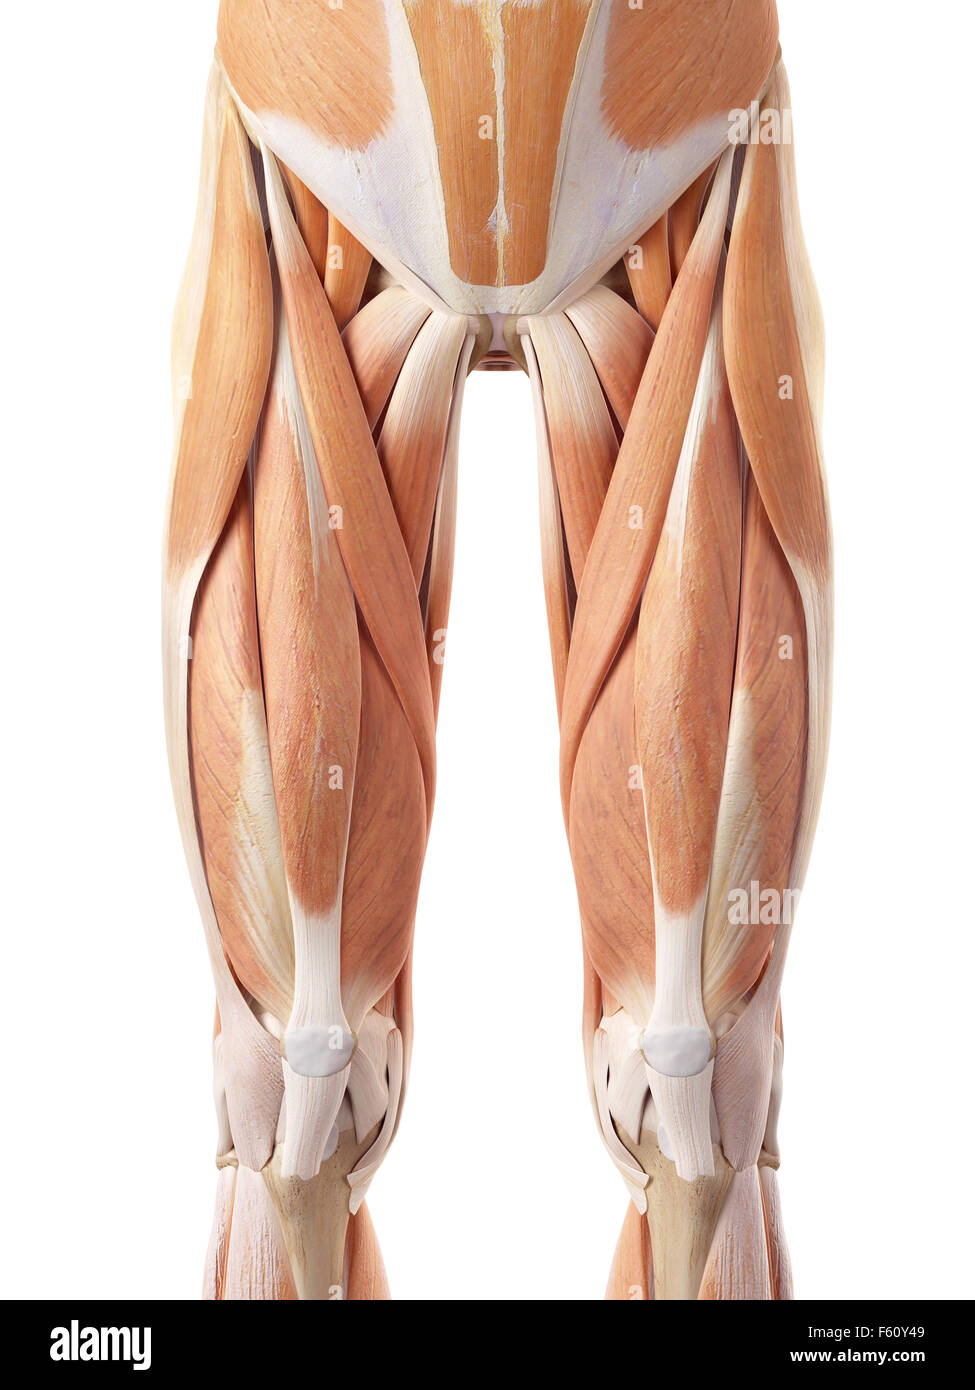 Upper Body Anatomy Stockfotos & Upper Body Anatomy Bilder - Alamy